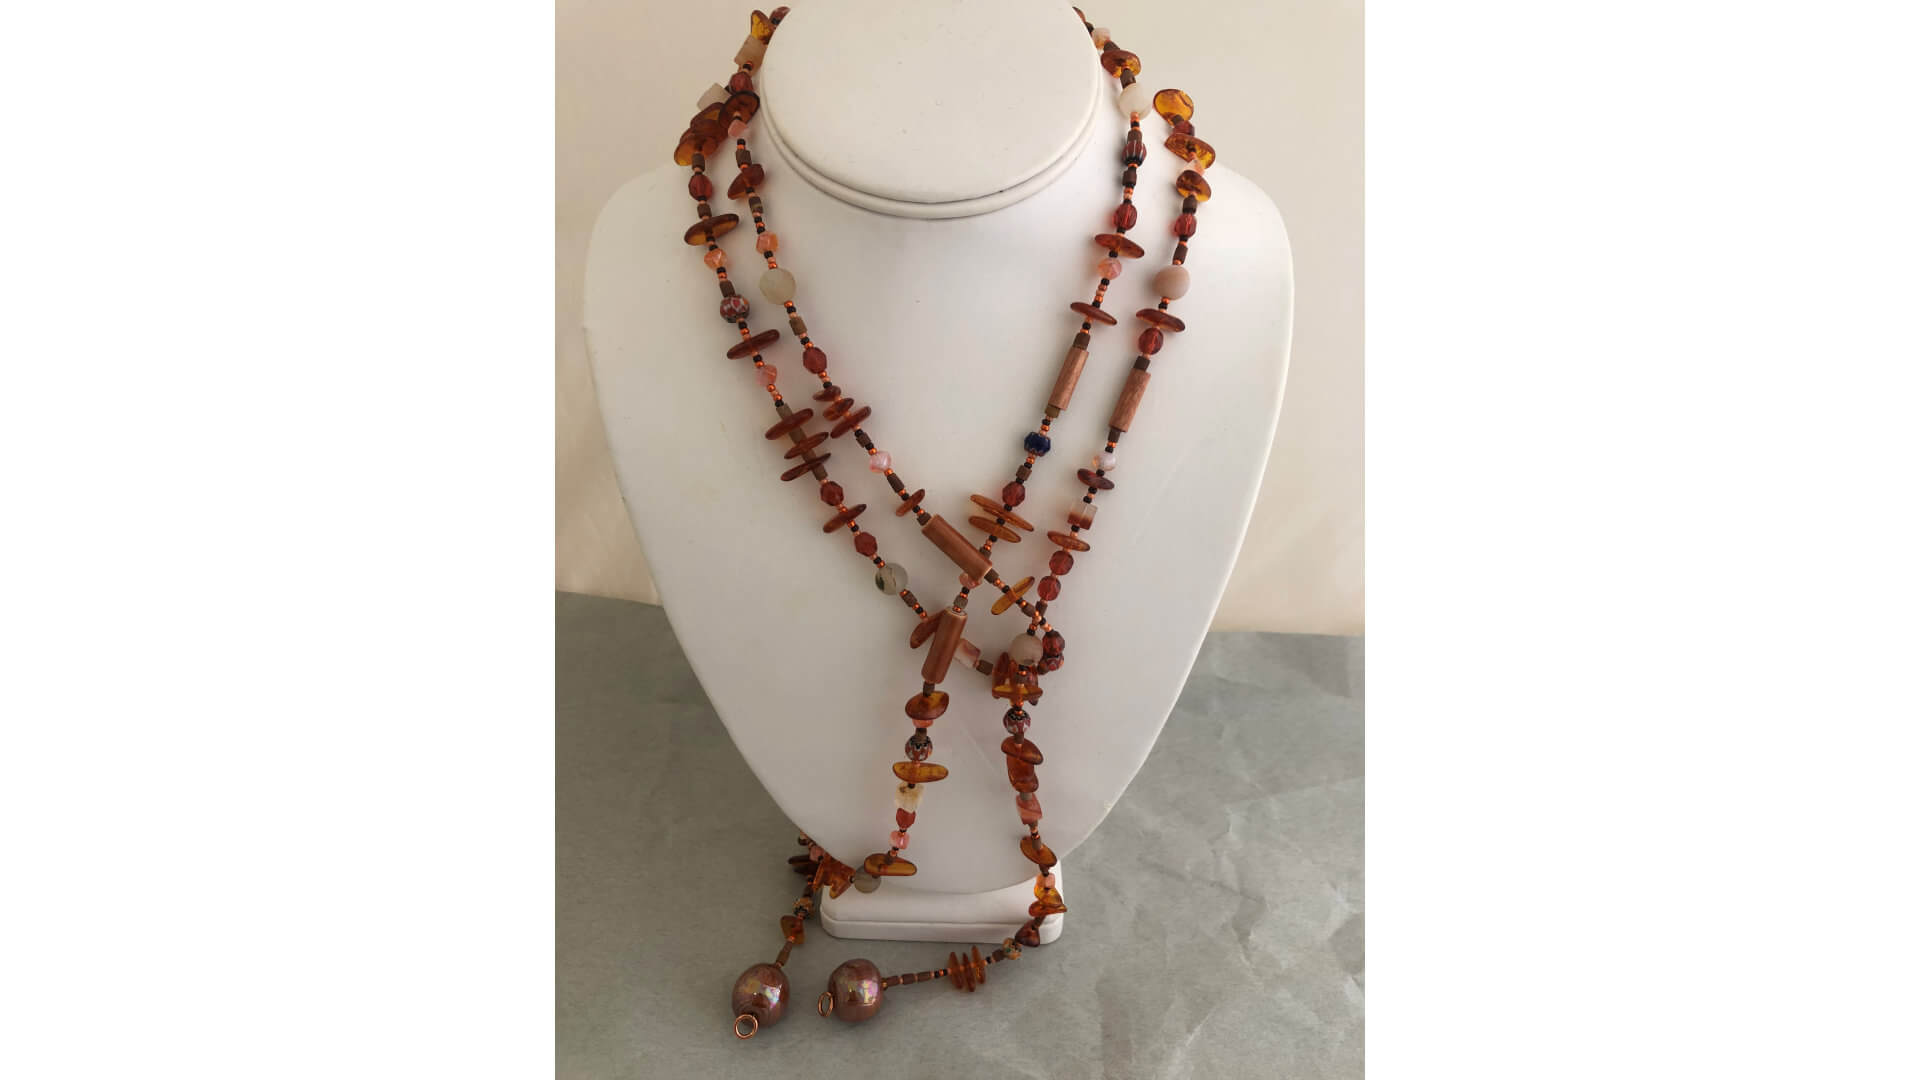 Amber and Rust Beaded Lariat Necklace by Susan Hazer Designs